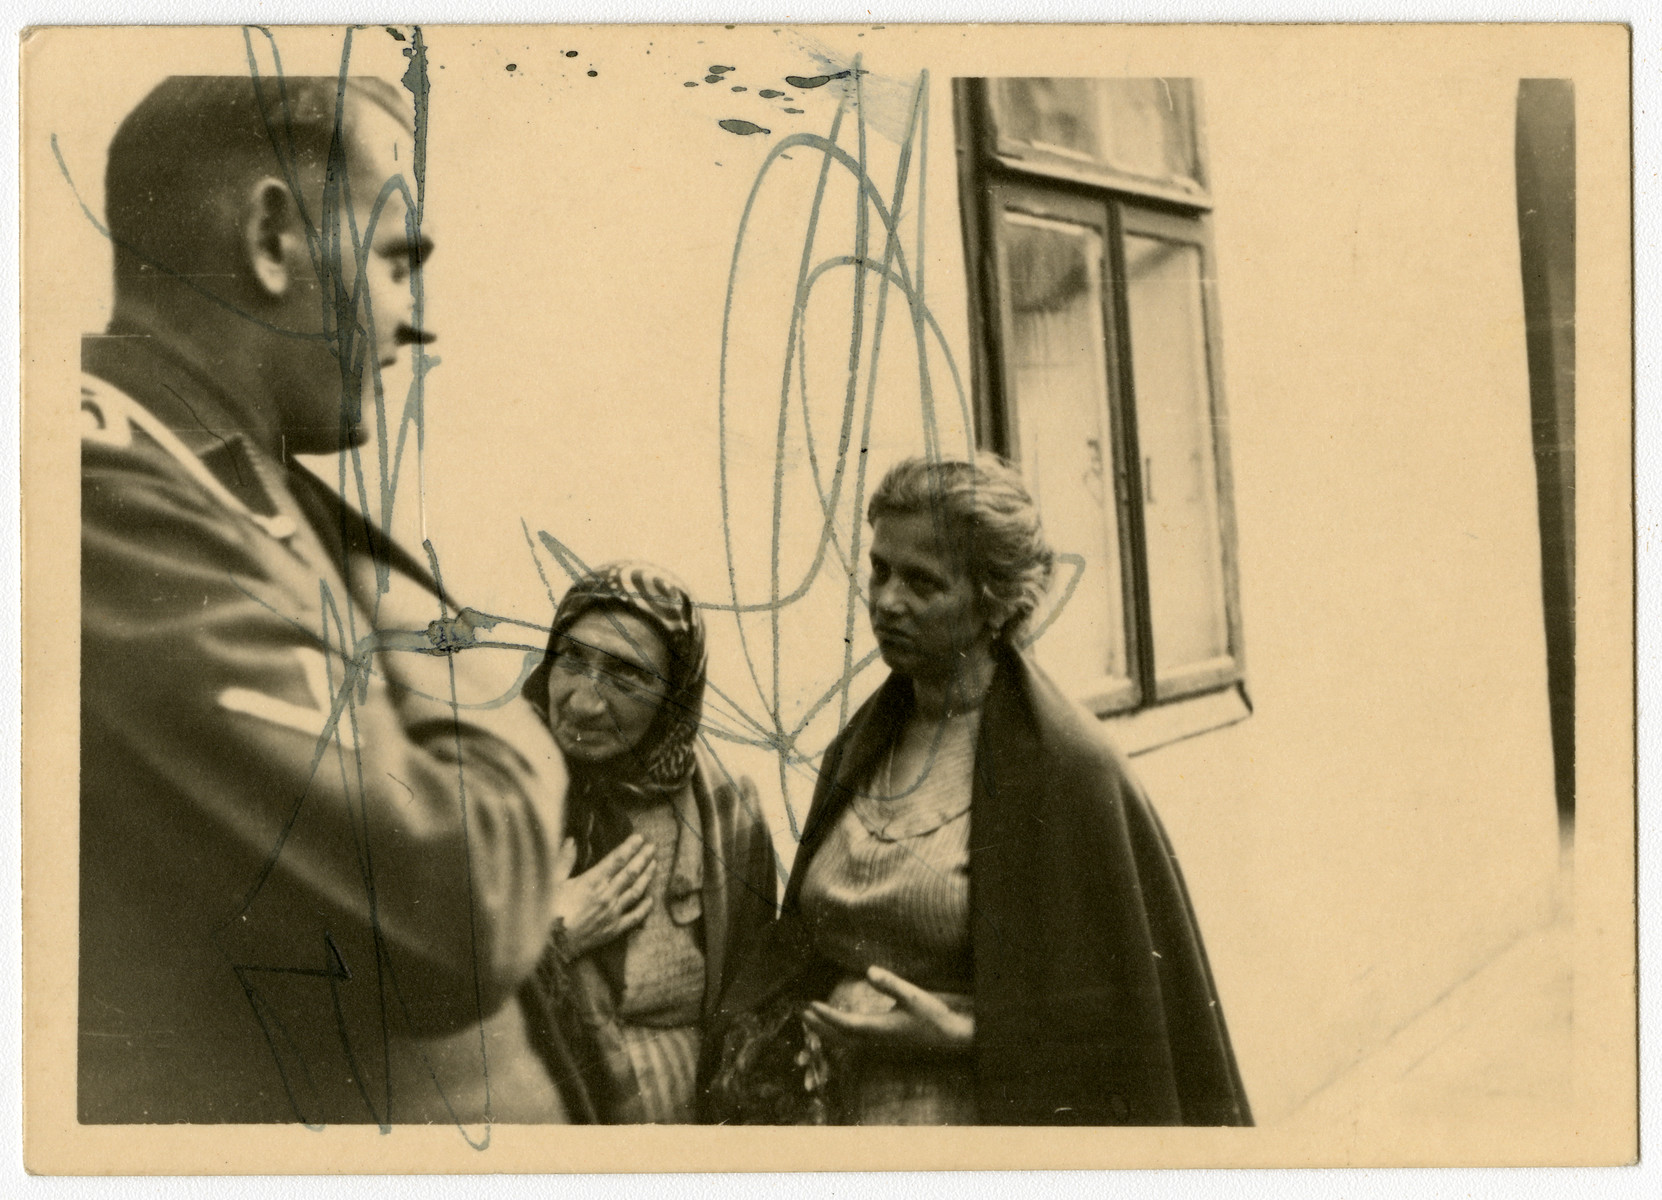 An SD officer questions two women before an unidentified exterior.  This image is one of twenty-six contained in an album found by Jacob Igra in an apartment in Sosnowiec after the war. Many of the photographs are believed to have been taken by a soldier with the SD-SIPO (Sicherheitspolizei) following the invasion of Poland in 1939. Additional photographs depict einsatzgruppen activities at sites throughout Nazi occupied Eastern Europe and may have been later additions to the album.